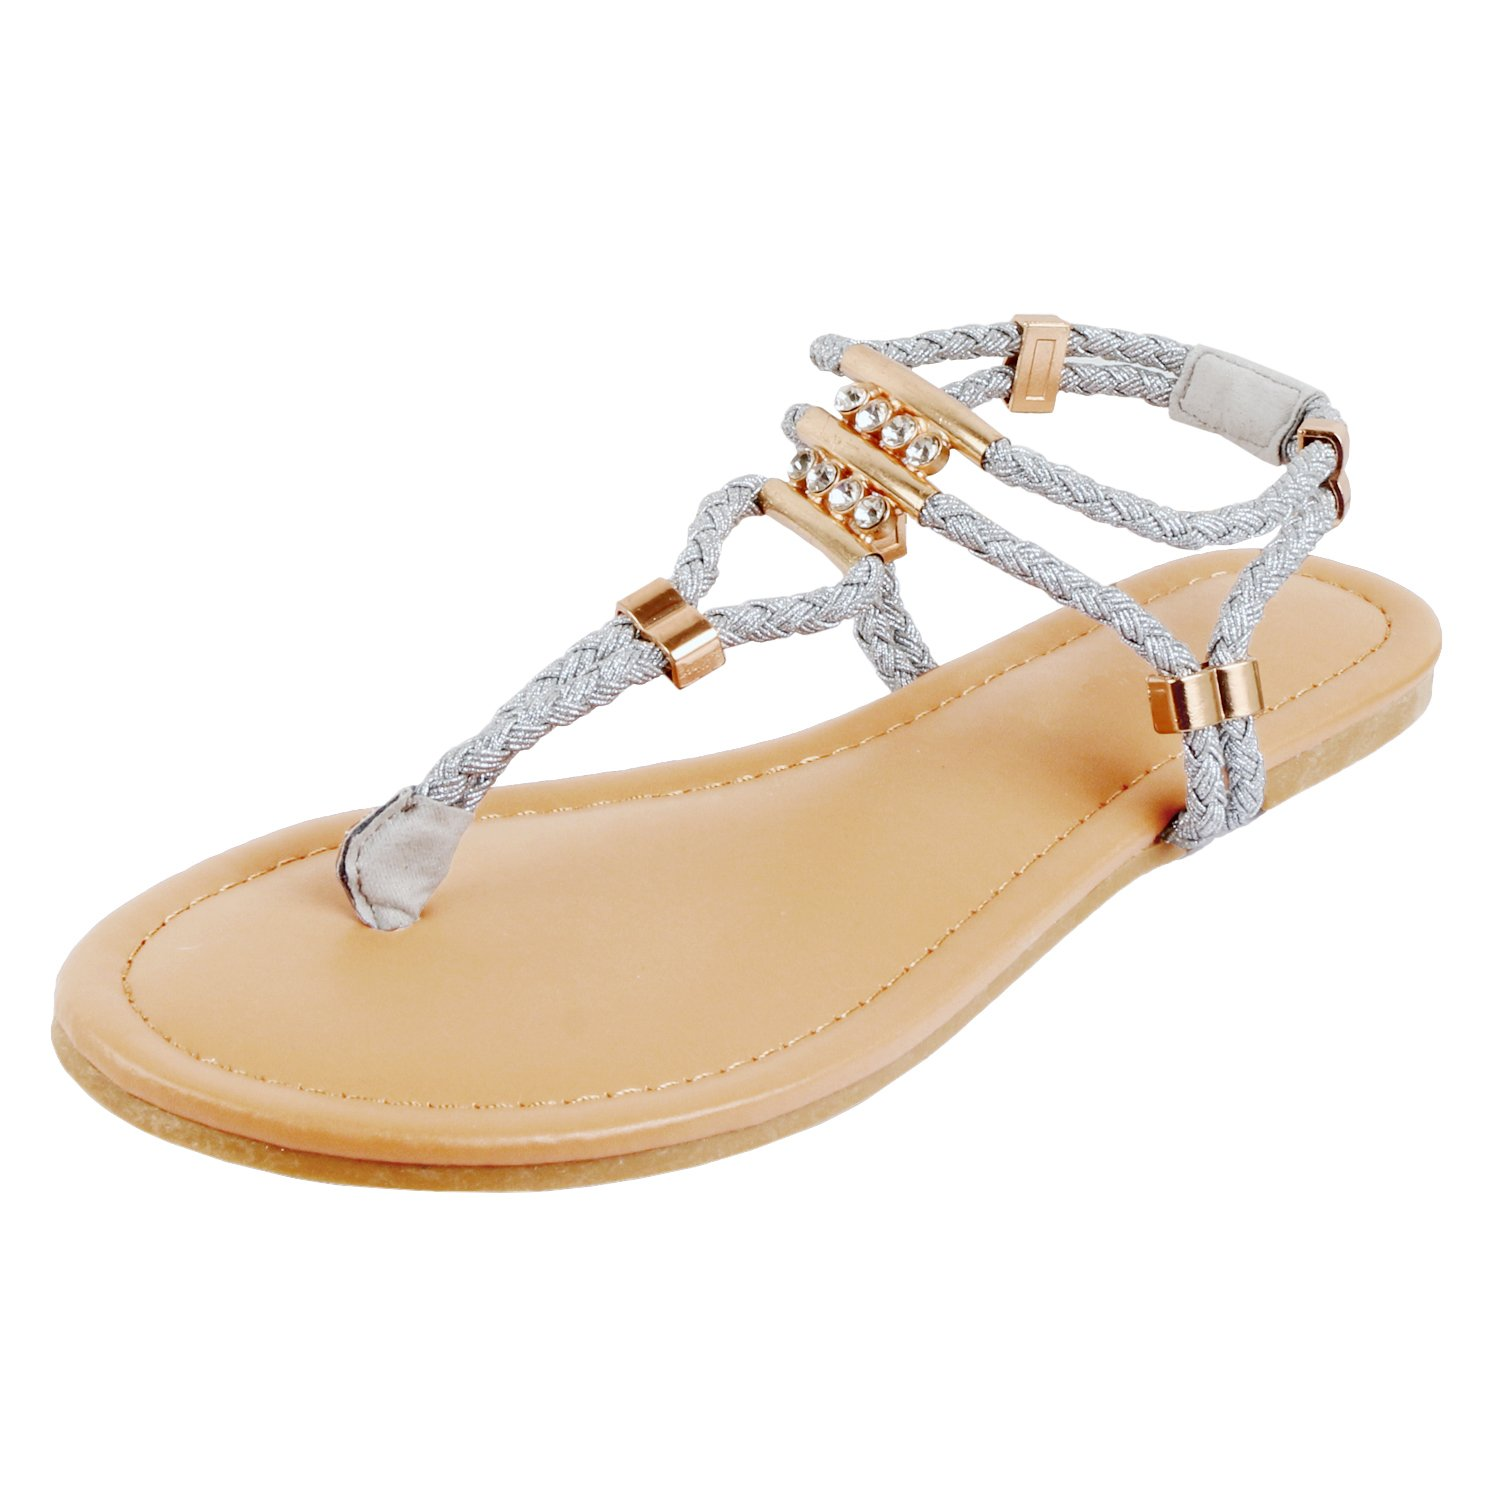 Guilty Heart - Womens Rhinestone Sparkle Sling Back Spring Summer Casual Thong Flat Sandal (8 B(M) US, Silverv2)